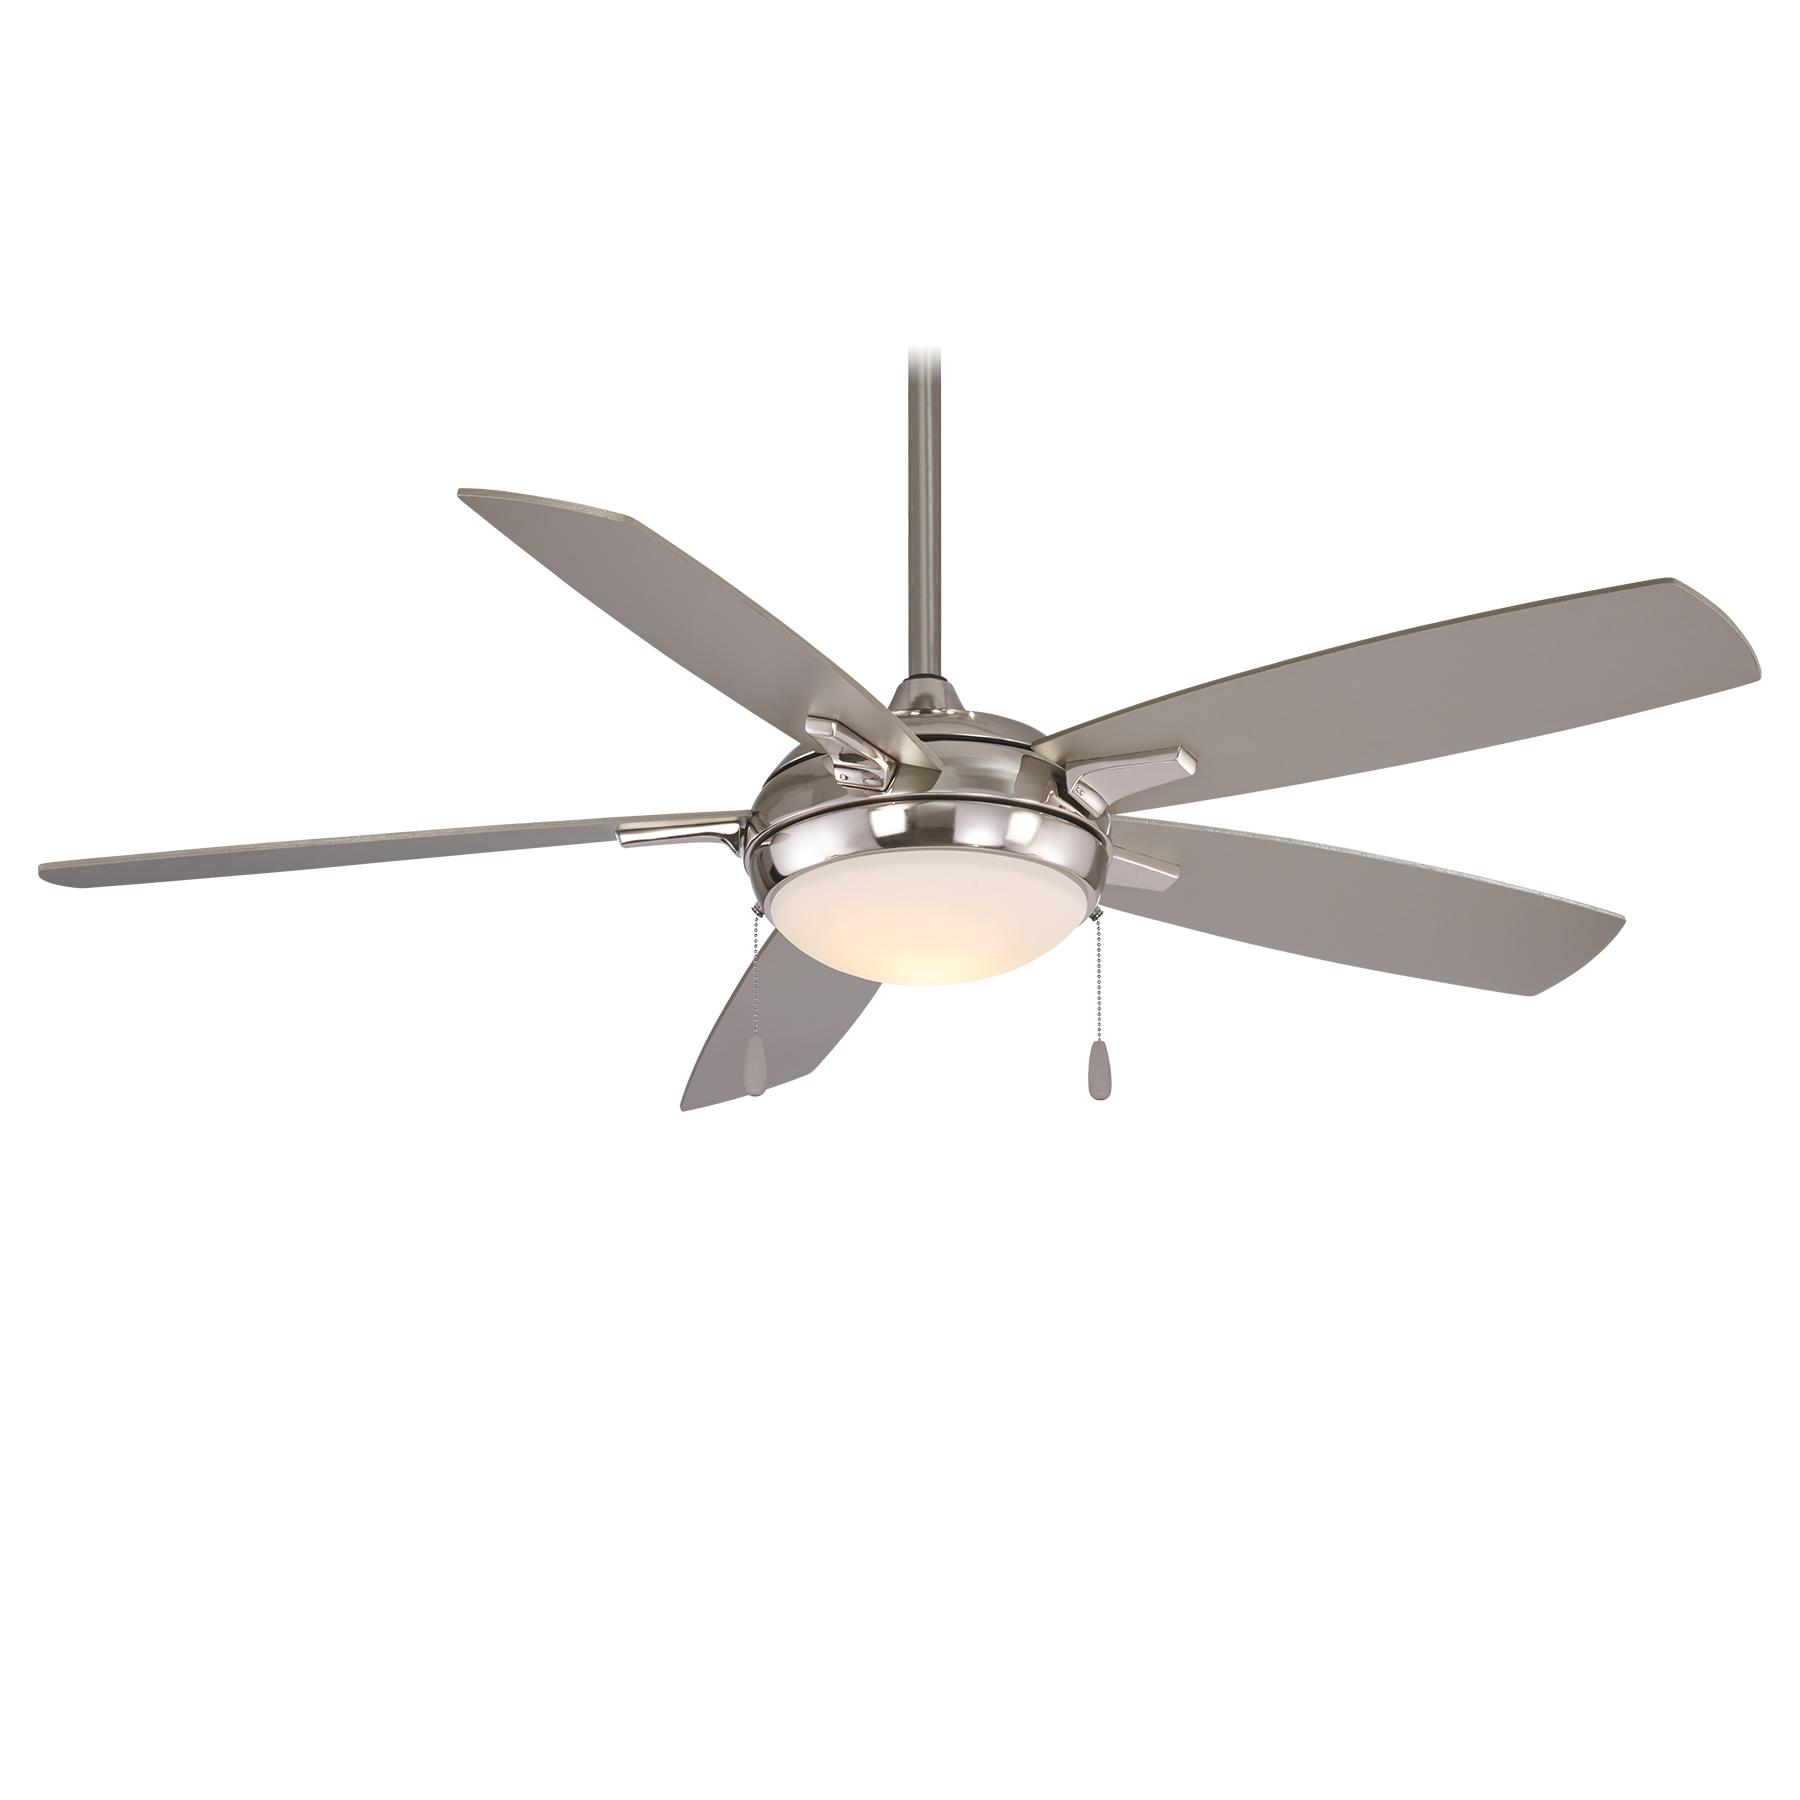 air minkaaire aire com bp fergusonshowrooms brand minka ceiling fan main at fans